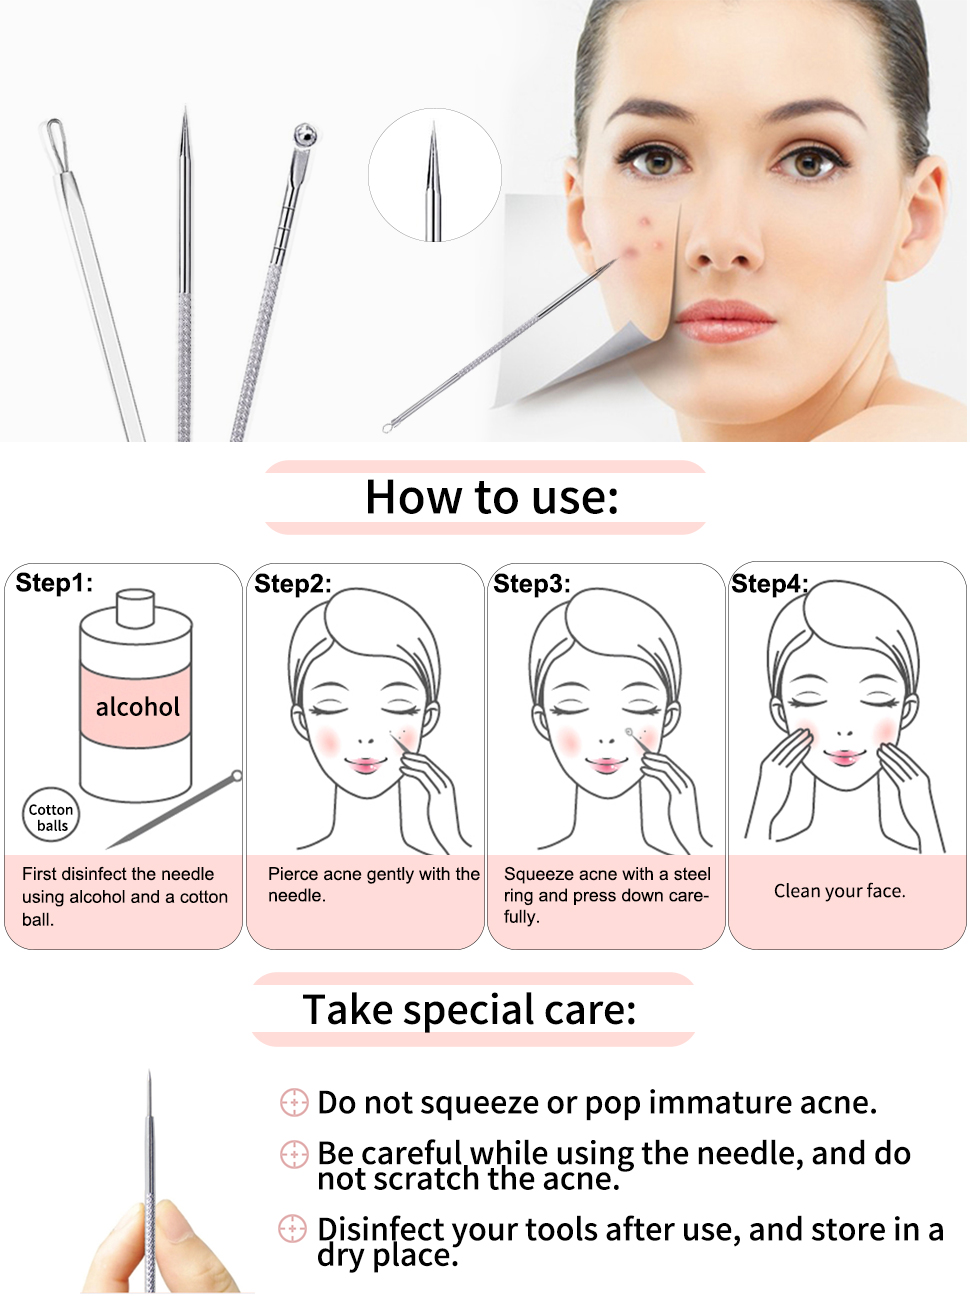 Extruded pimple: what to process How to squeeze out pimples correctly